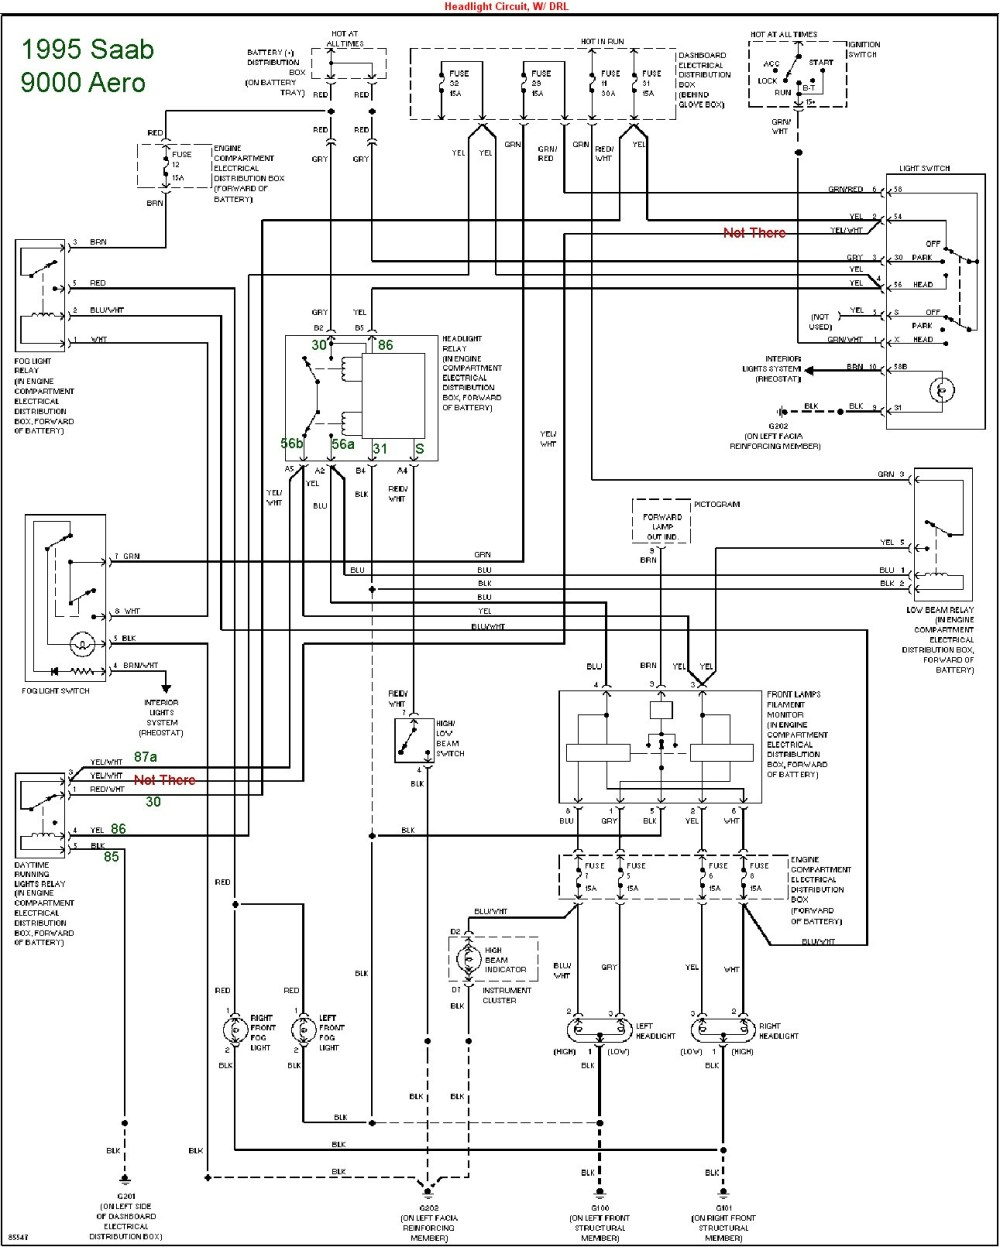 medium resolution of 2006 saab 9 3 wiring schematic wiring diagram meta 2006 saab 9 3 wiring diagram 2006 saab 9 3 wiring diagram